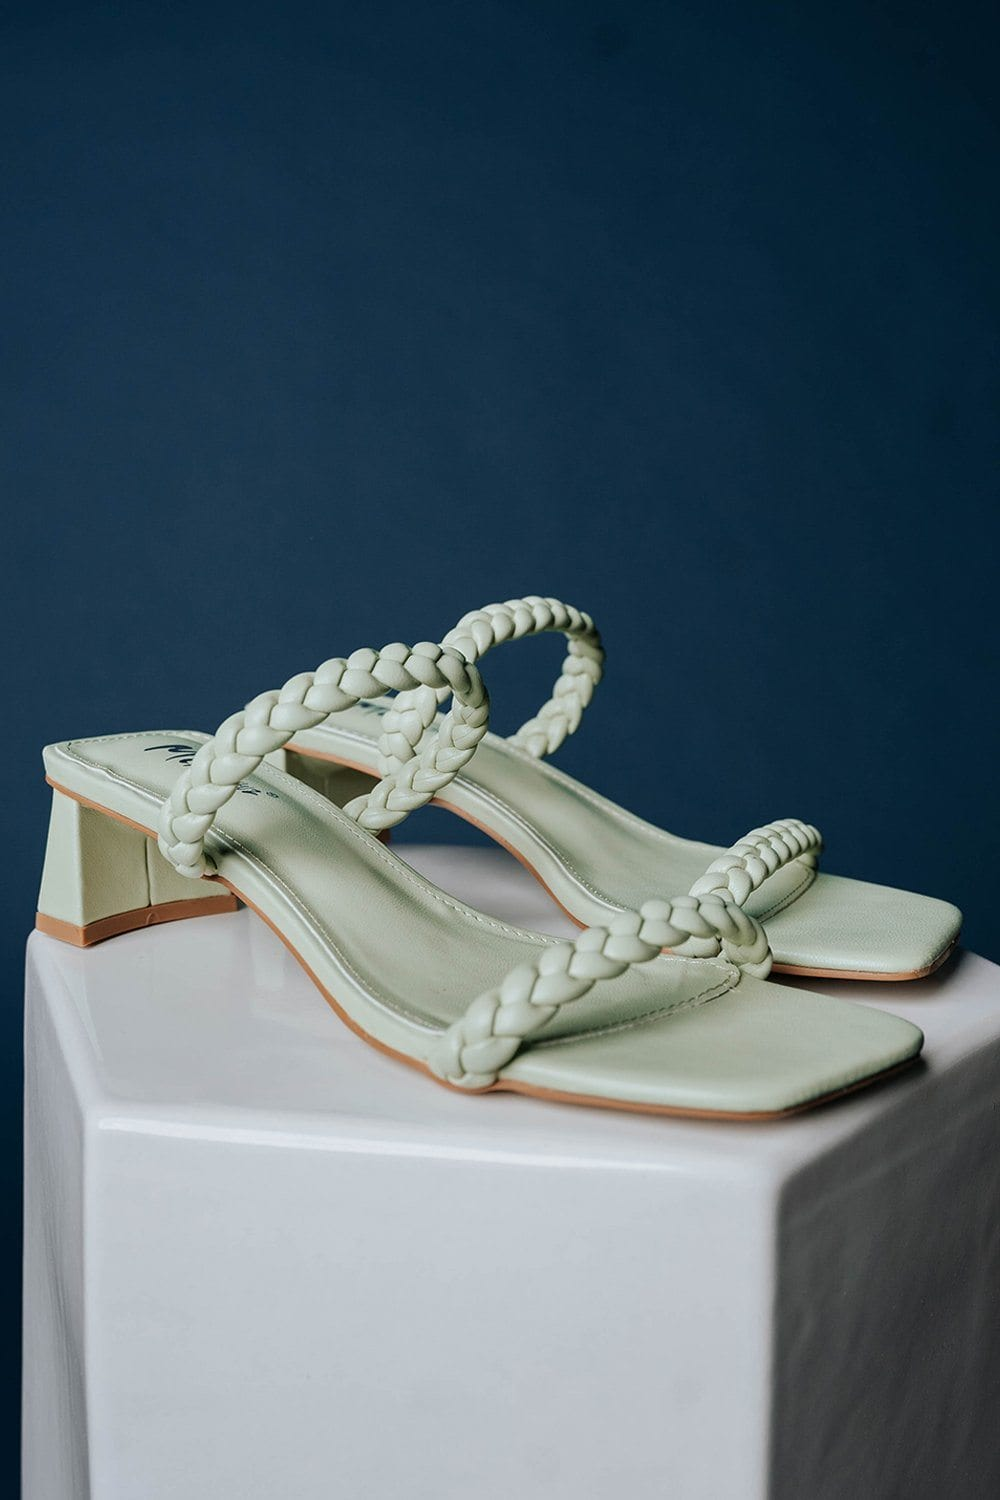 Walk in Rome Heels in Lime, cladandcloth, n/a.